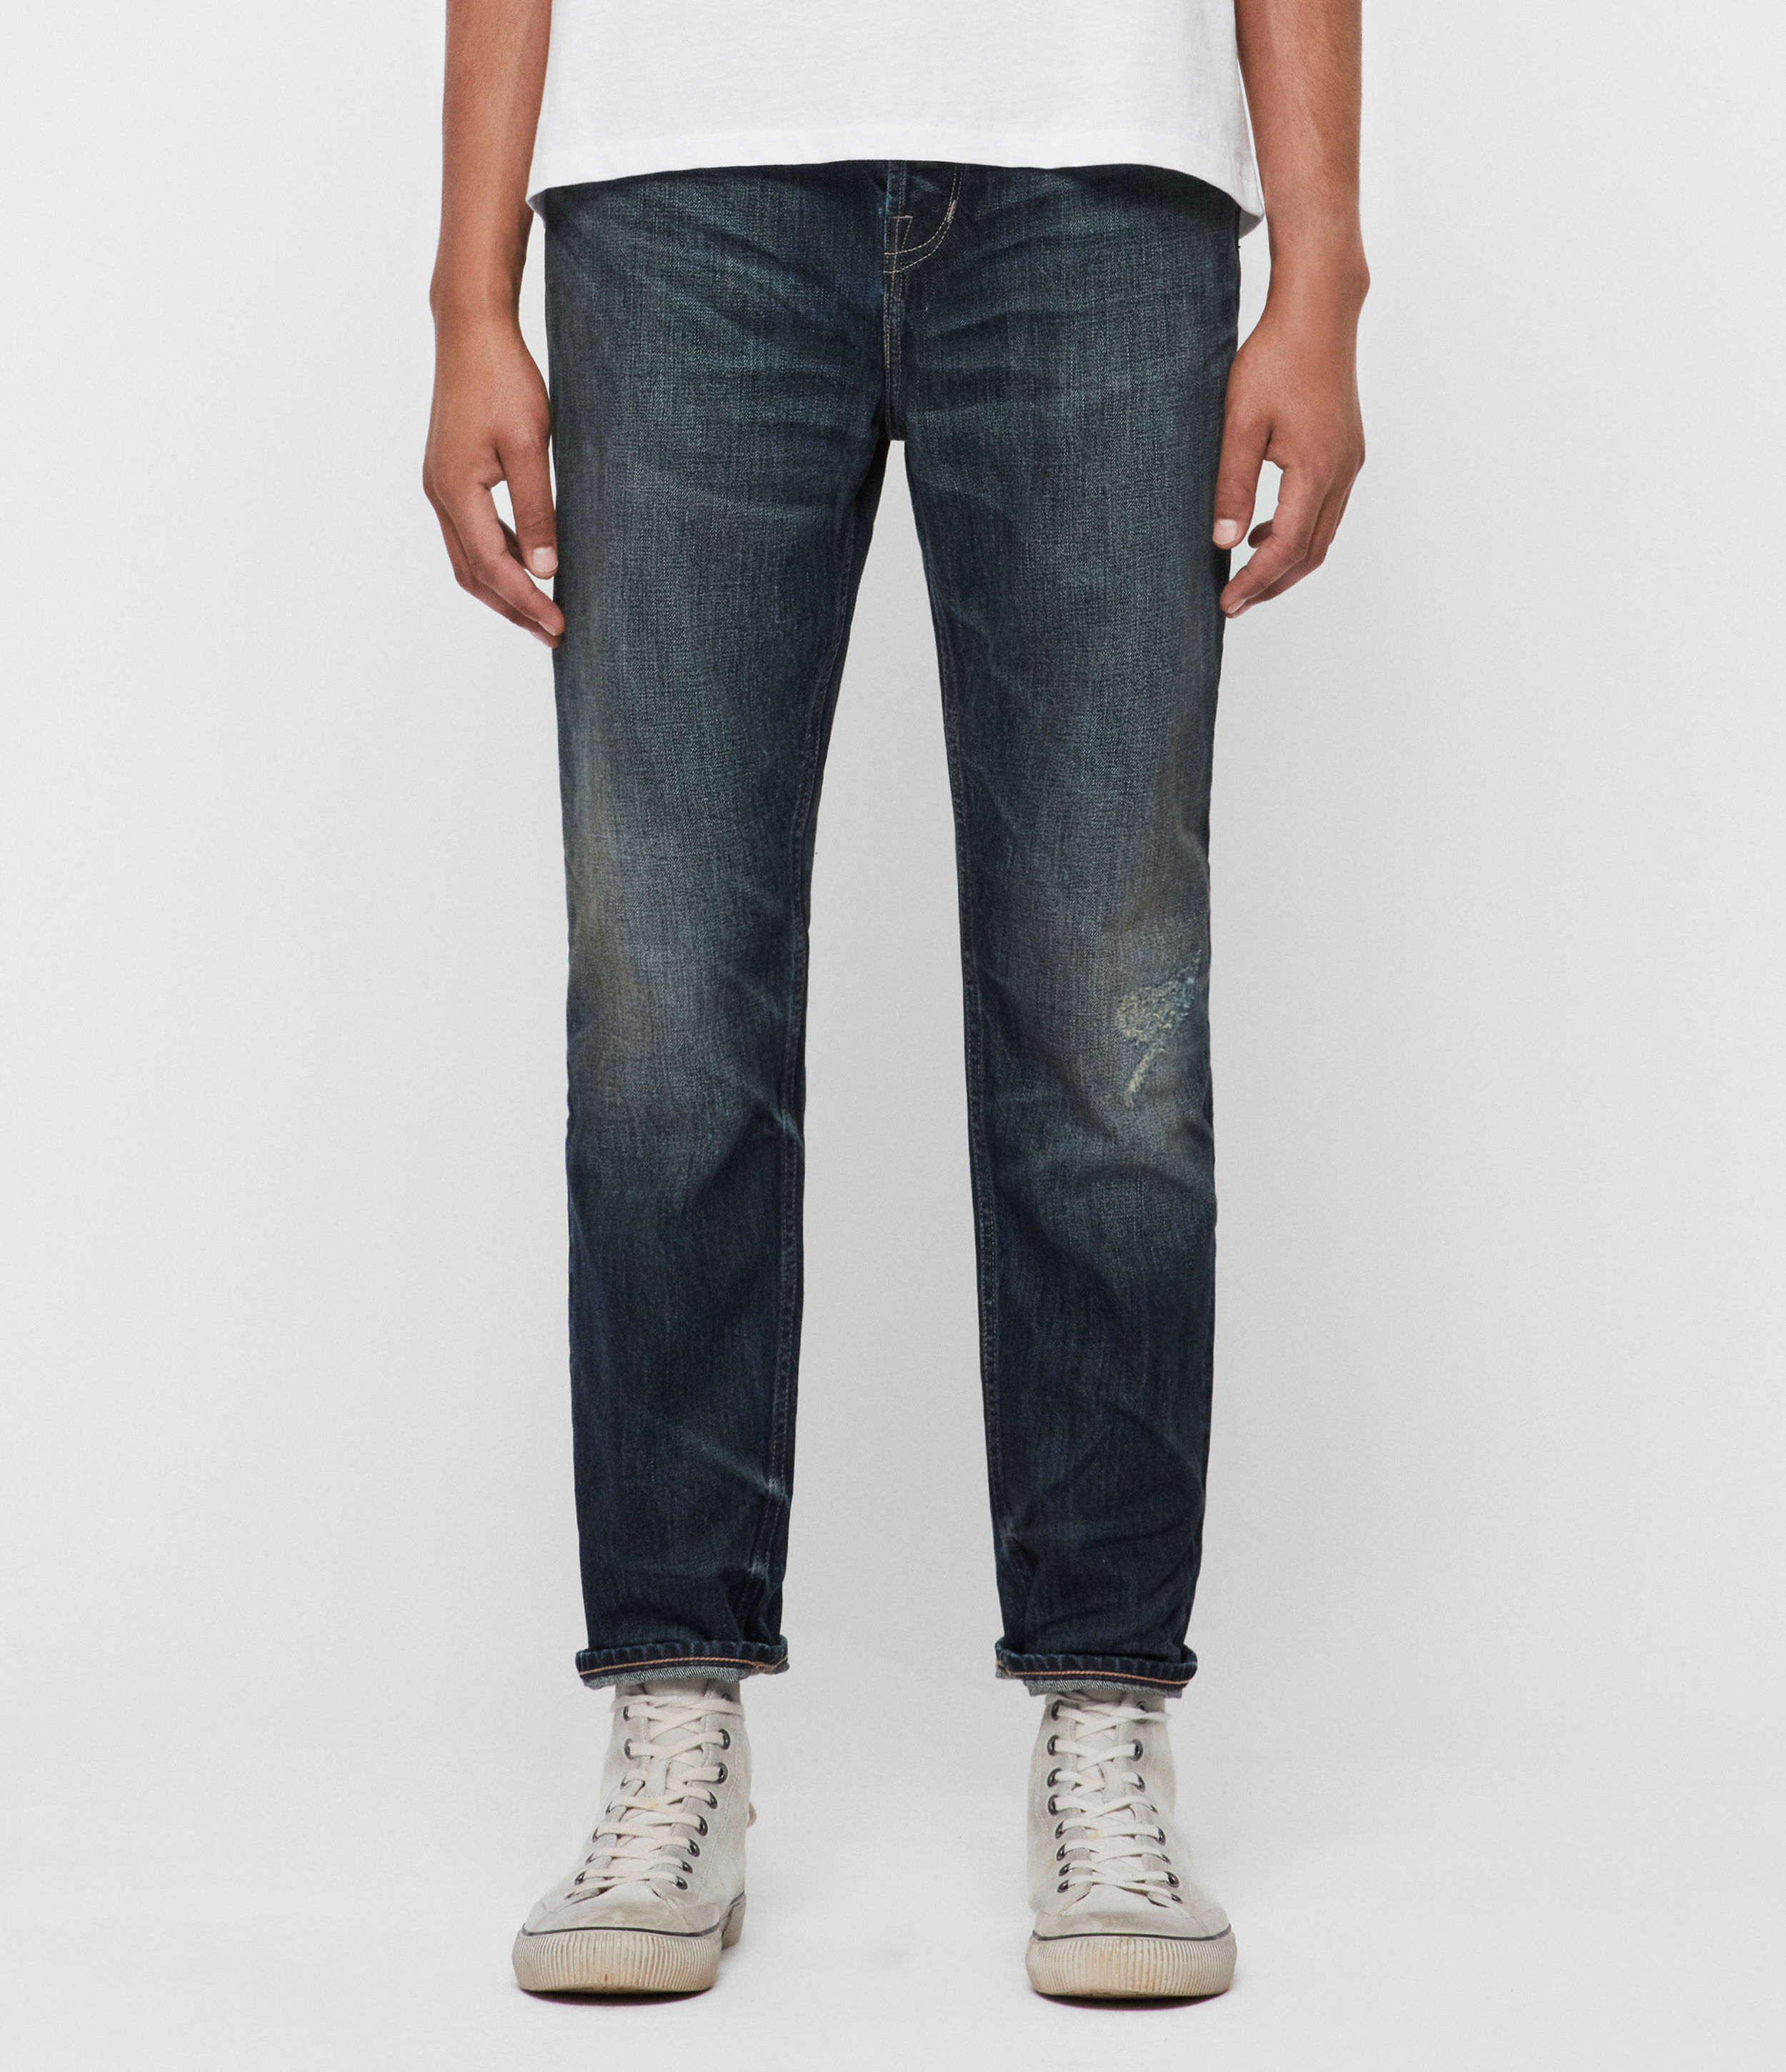 AllSaints Ridge Damaged Tapered Jeans, Indigo